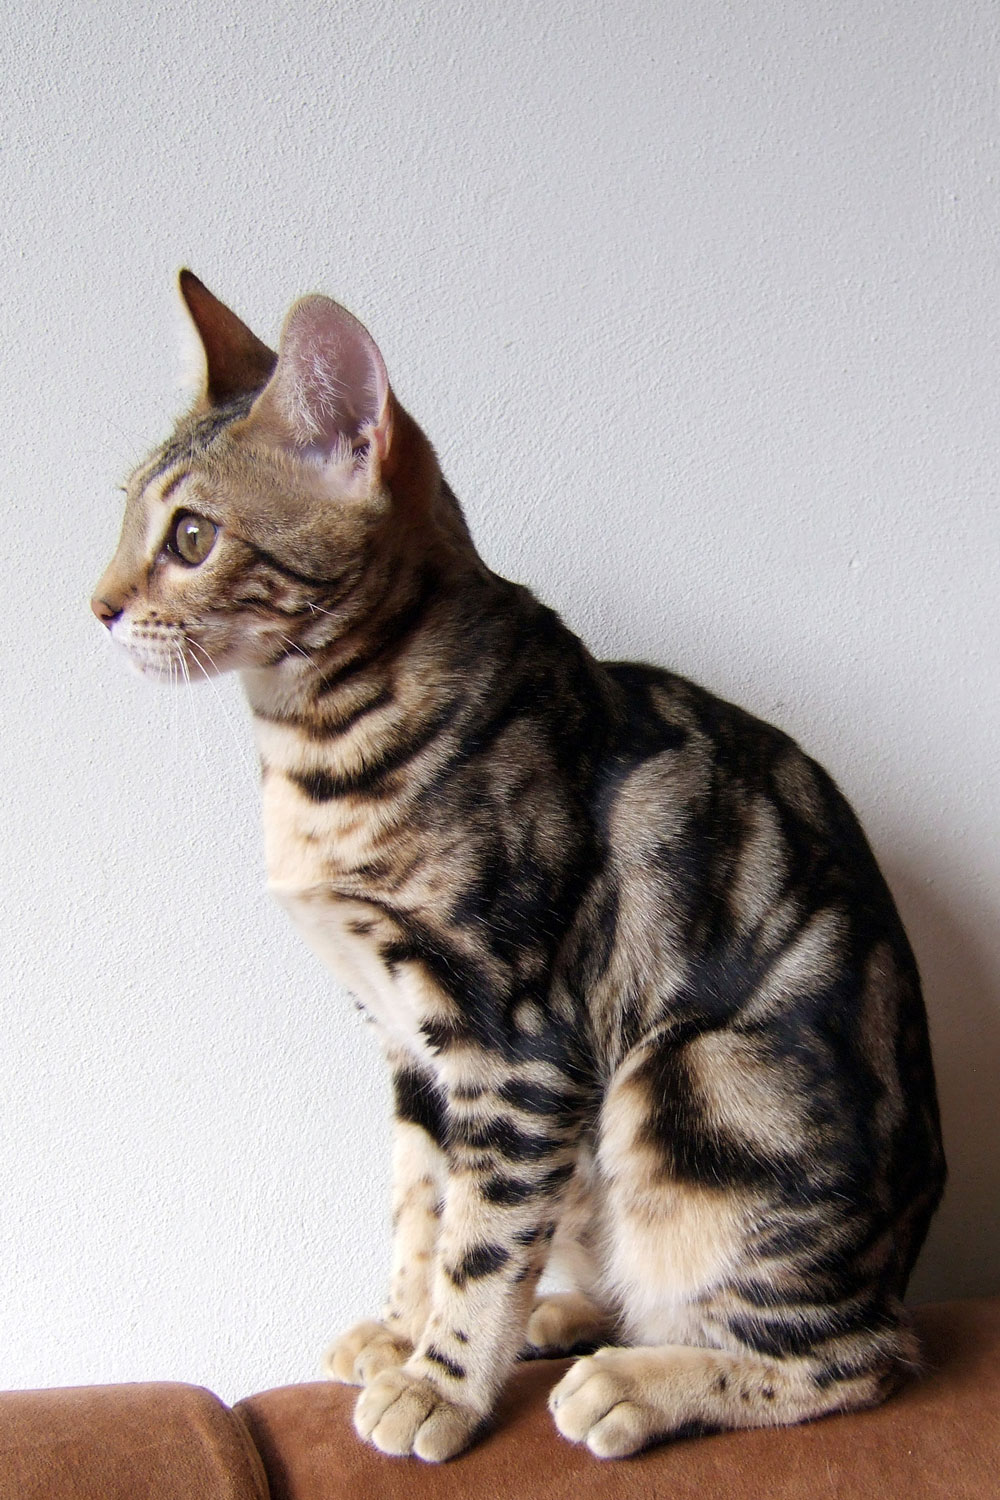 A Bengal kitten sitting on the kitchen table